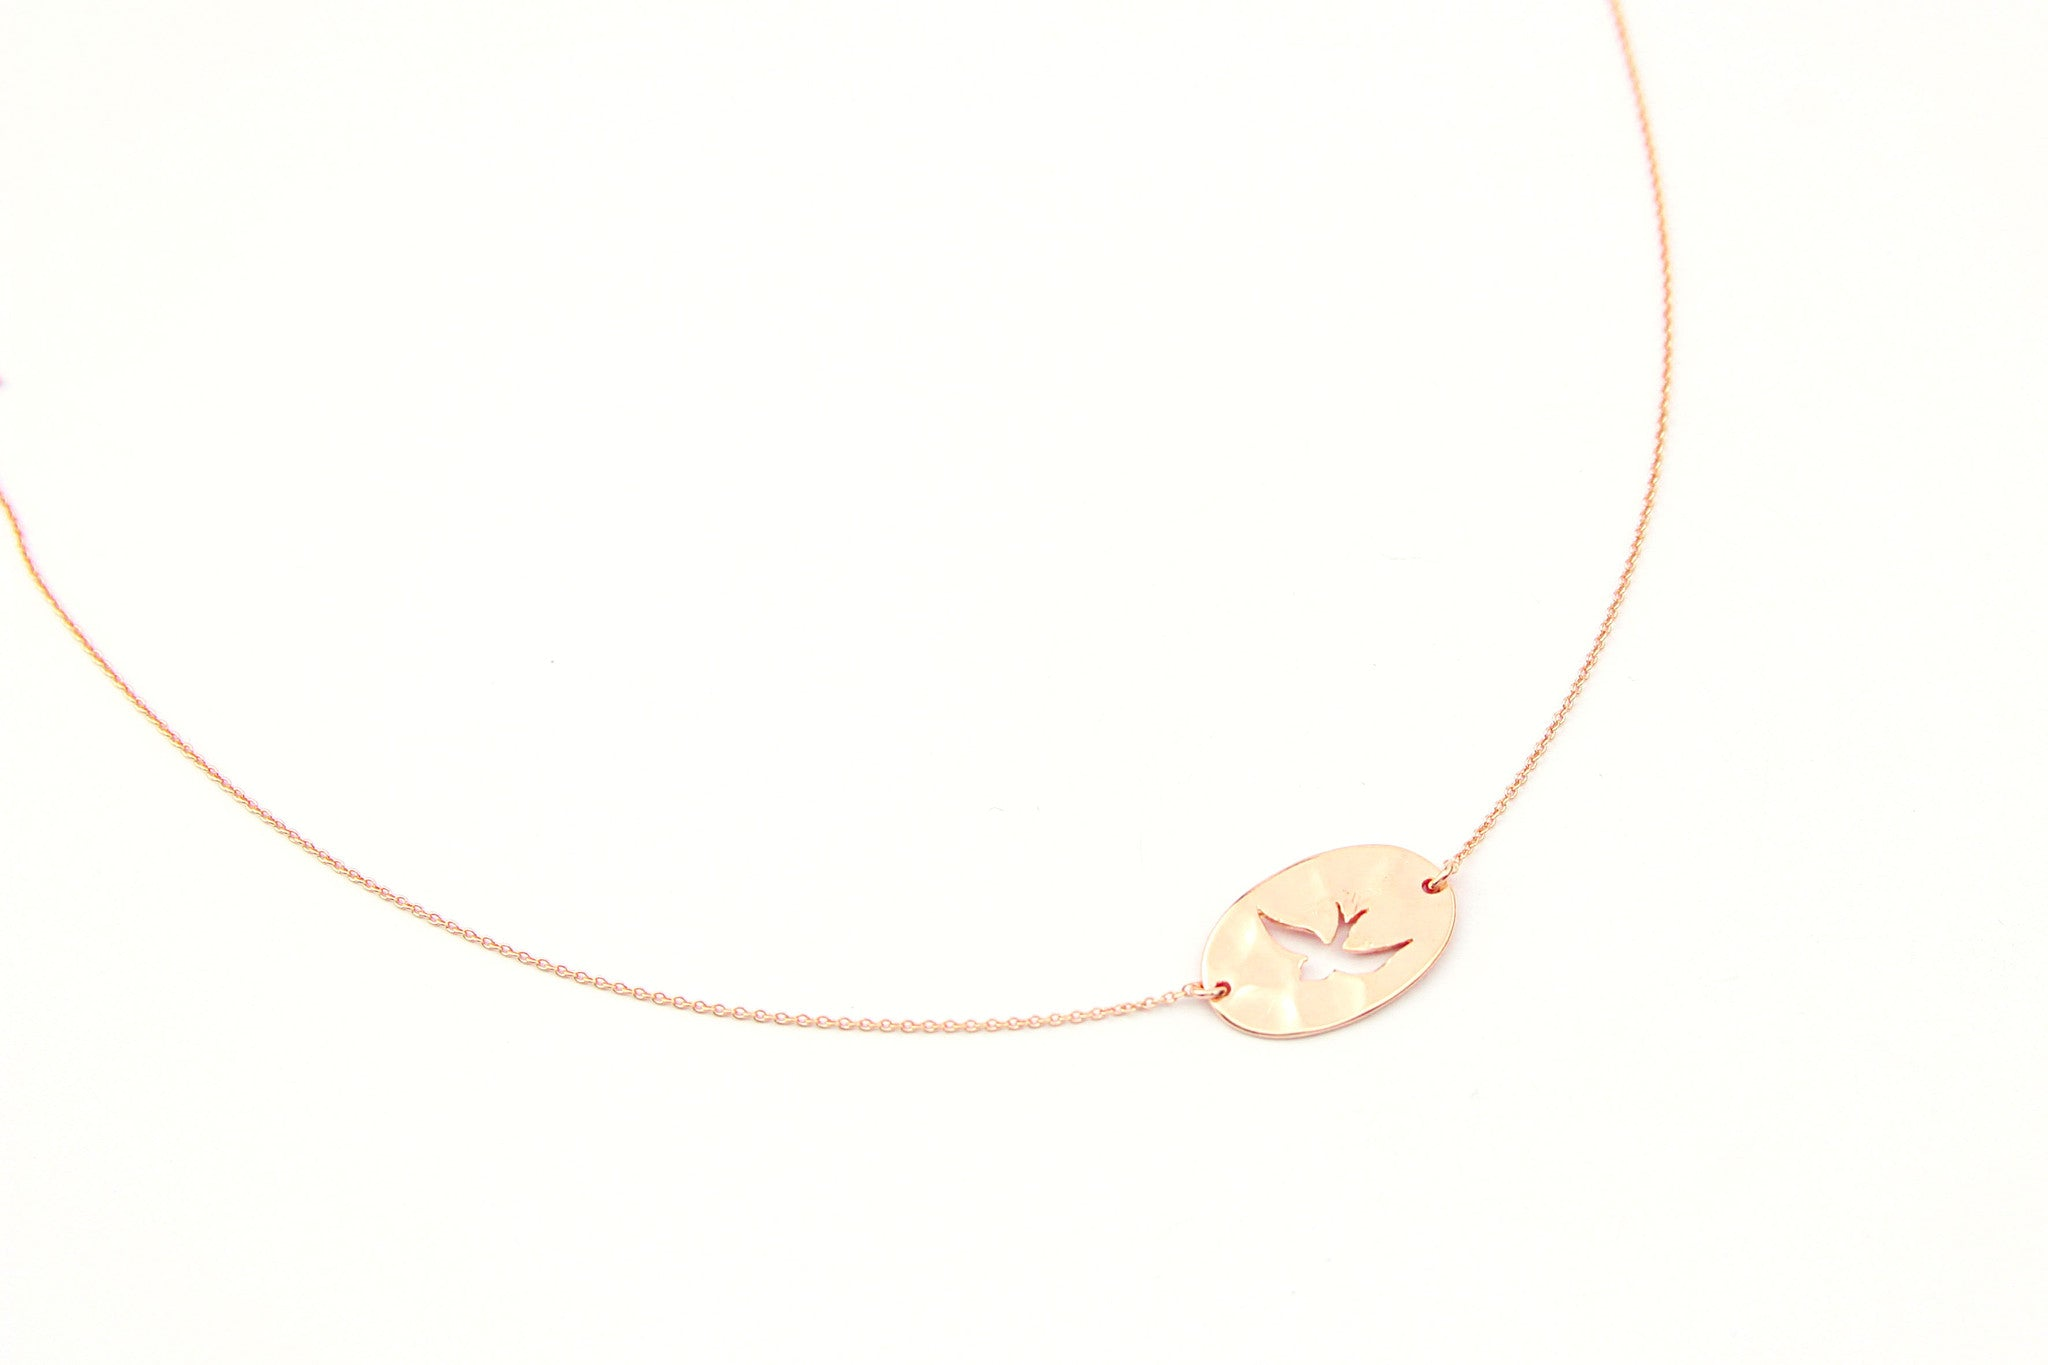 jewelberry necklace kette cut out swallow anchor chain rose gold plated sterling silver fine jewelry handmade with love fairtrade